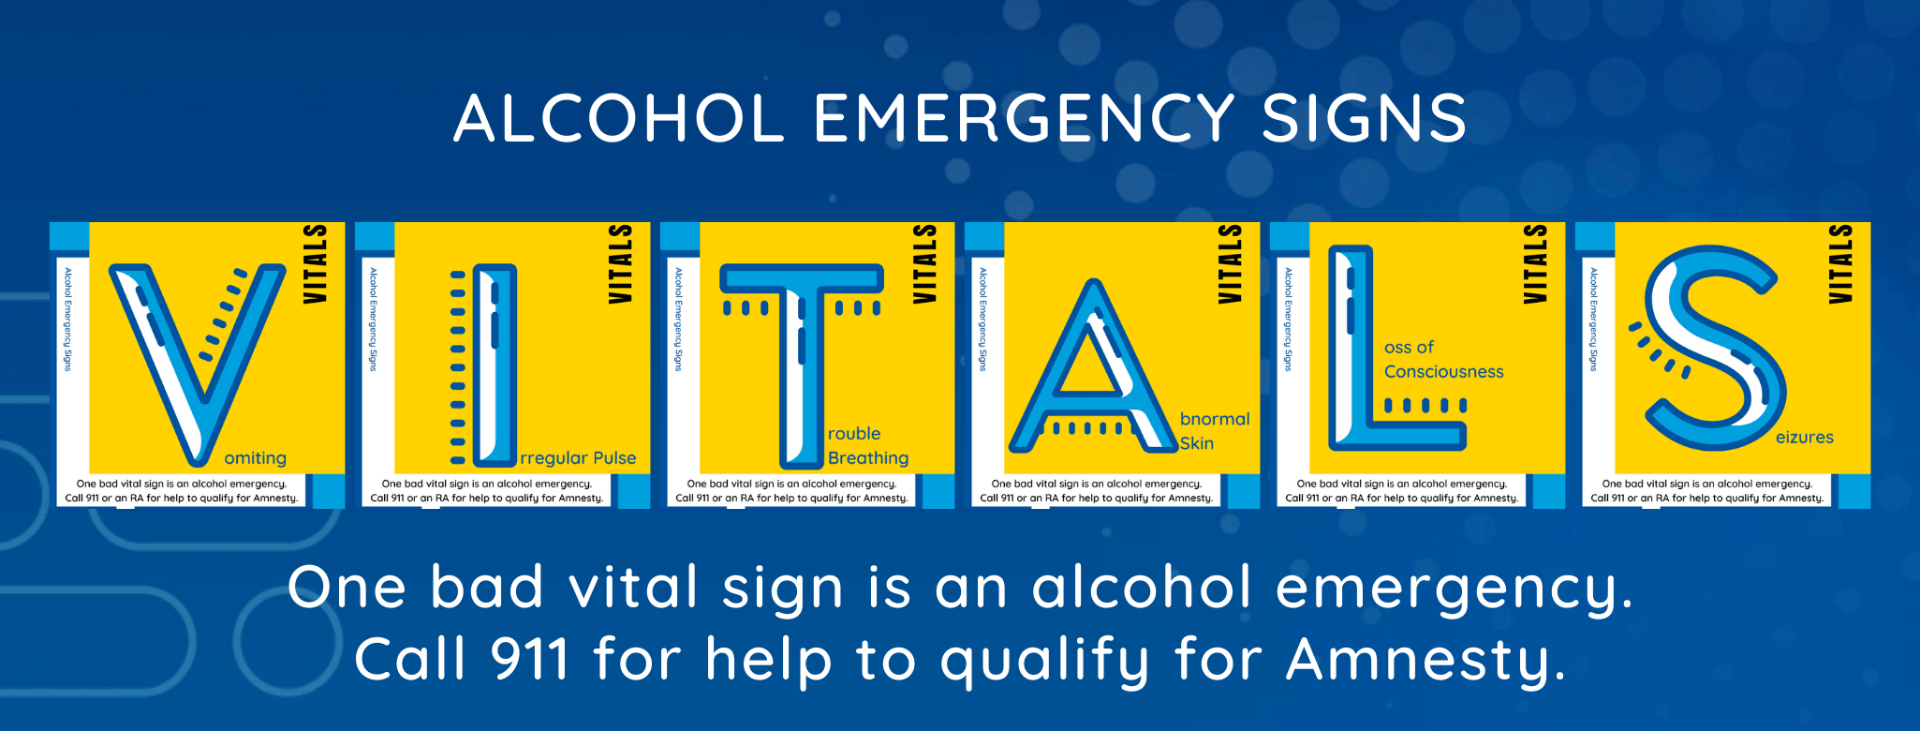 text: alcohol emergency signs: VITALS - one bad vital sign is an alcohol emergency. call 911 for help to qualify for amnesty.